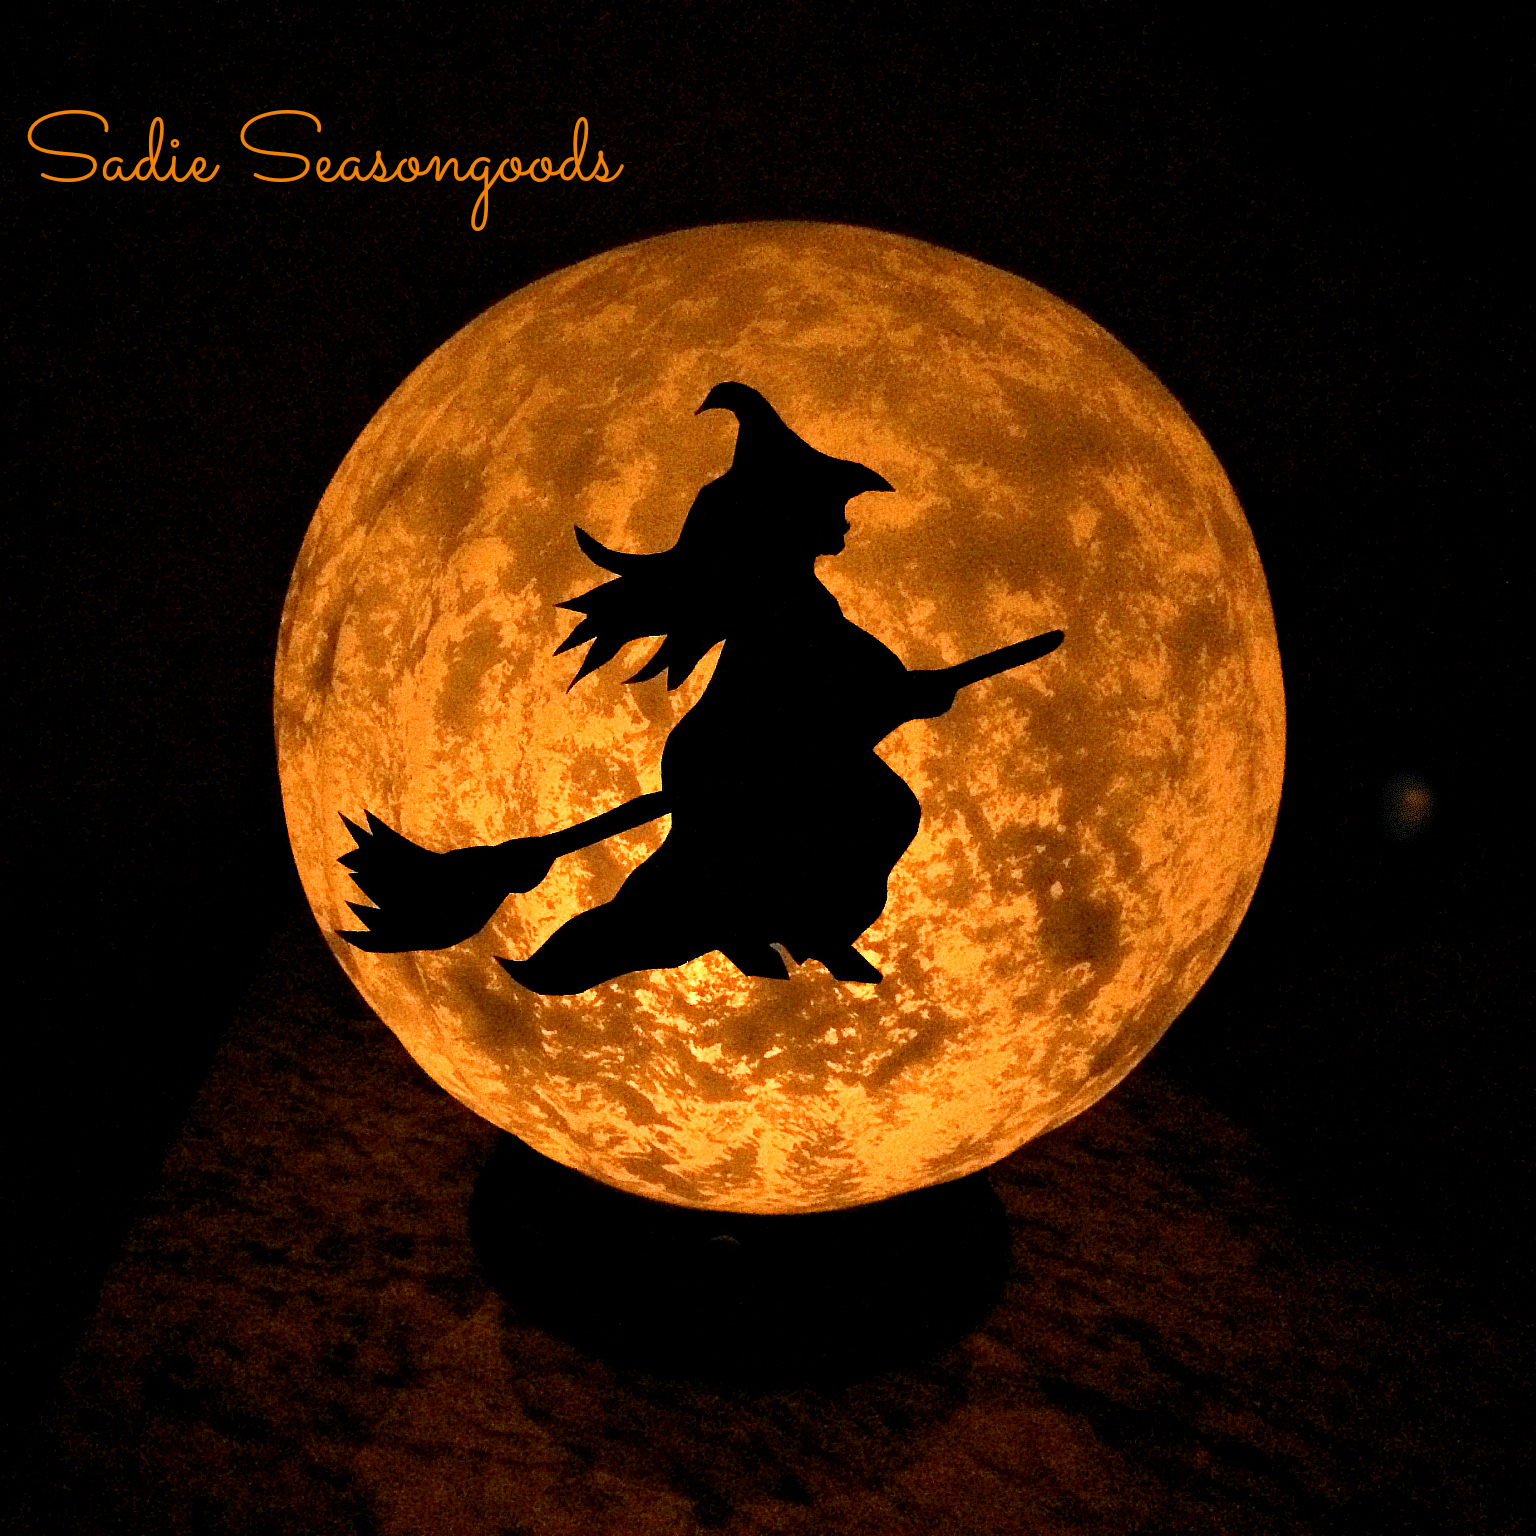 Vintage Light Fixture Halloween Moon, by Sadie Seasongoods, featured on Funky Junk Interiors